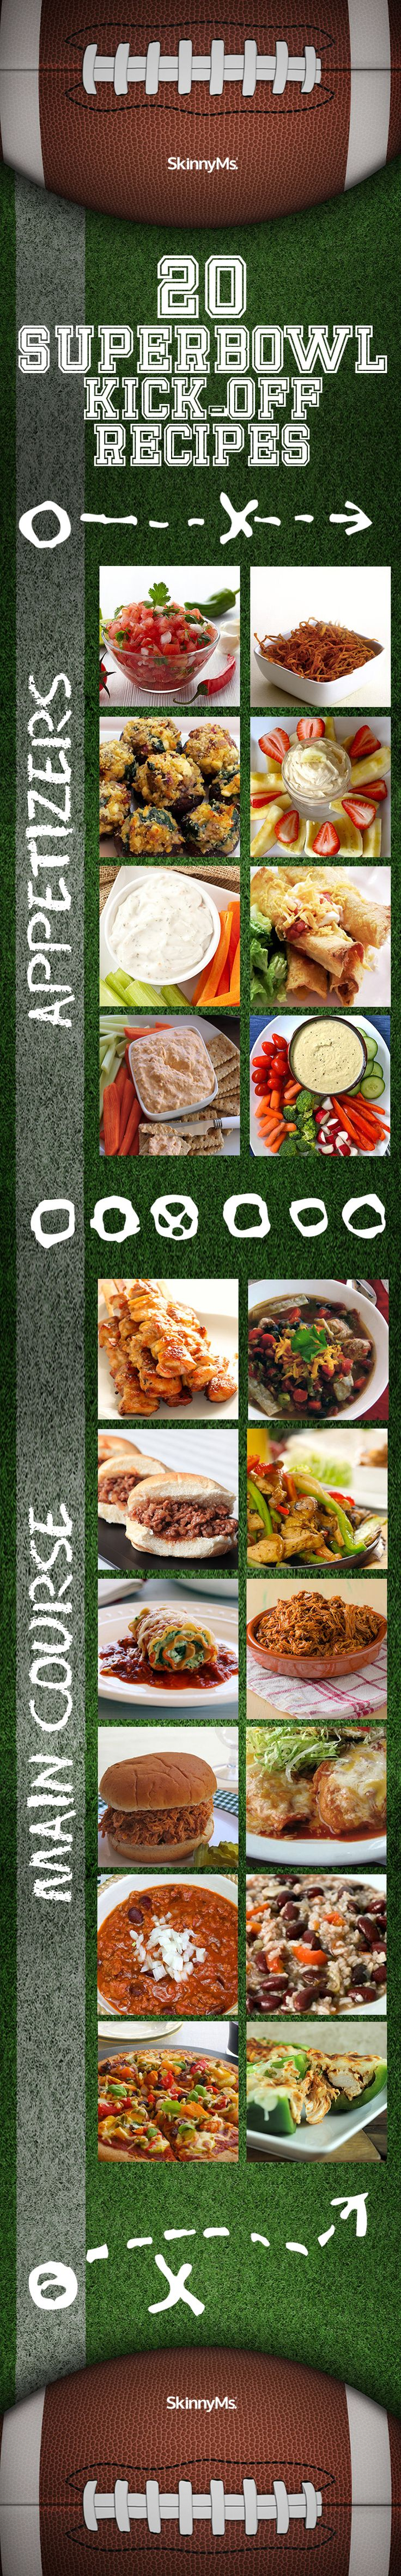 Go ahead and splurge for Superbowl Sunday, and without an ounce of guilt! From pizza to stuffed mushrooms to Skinny Chicken Taquitos, there's something for everyone. #cleaneatingrecipes